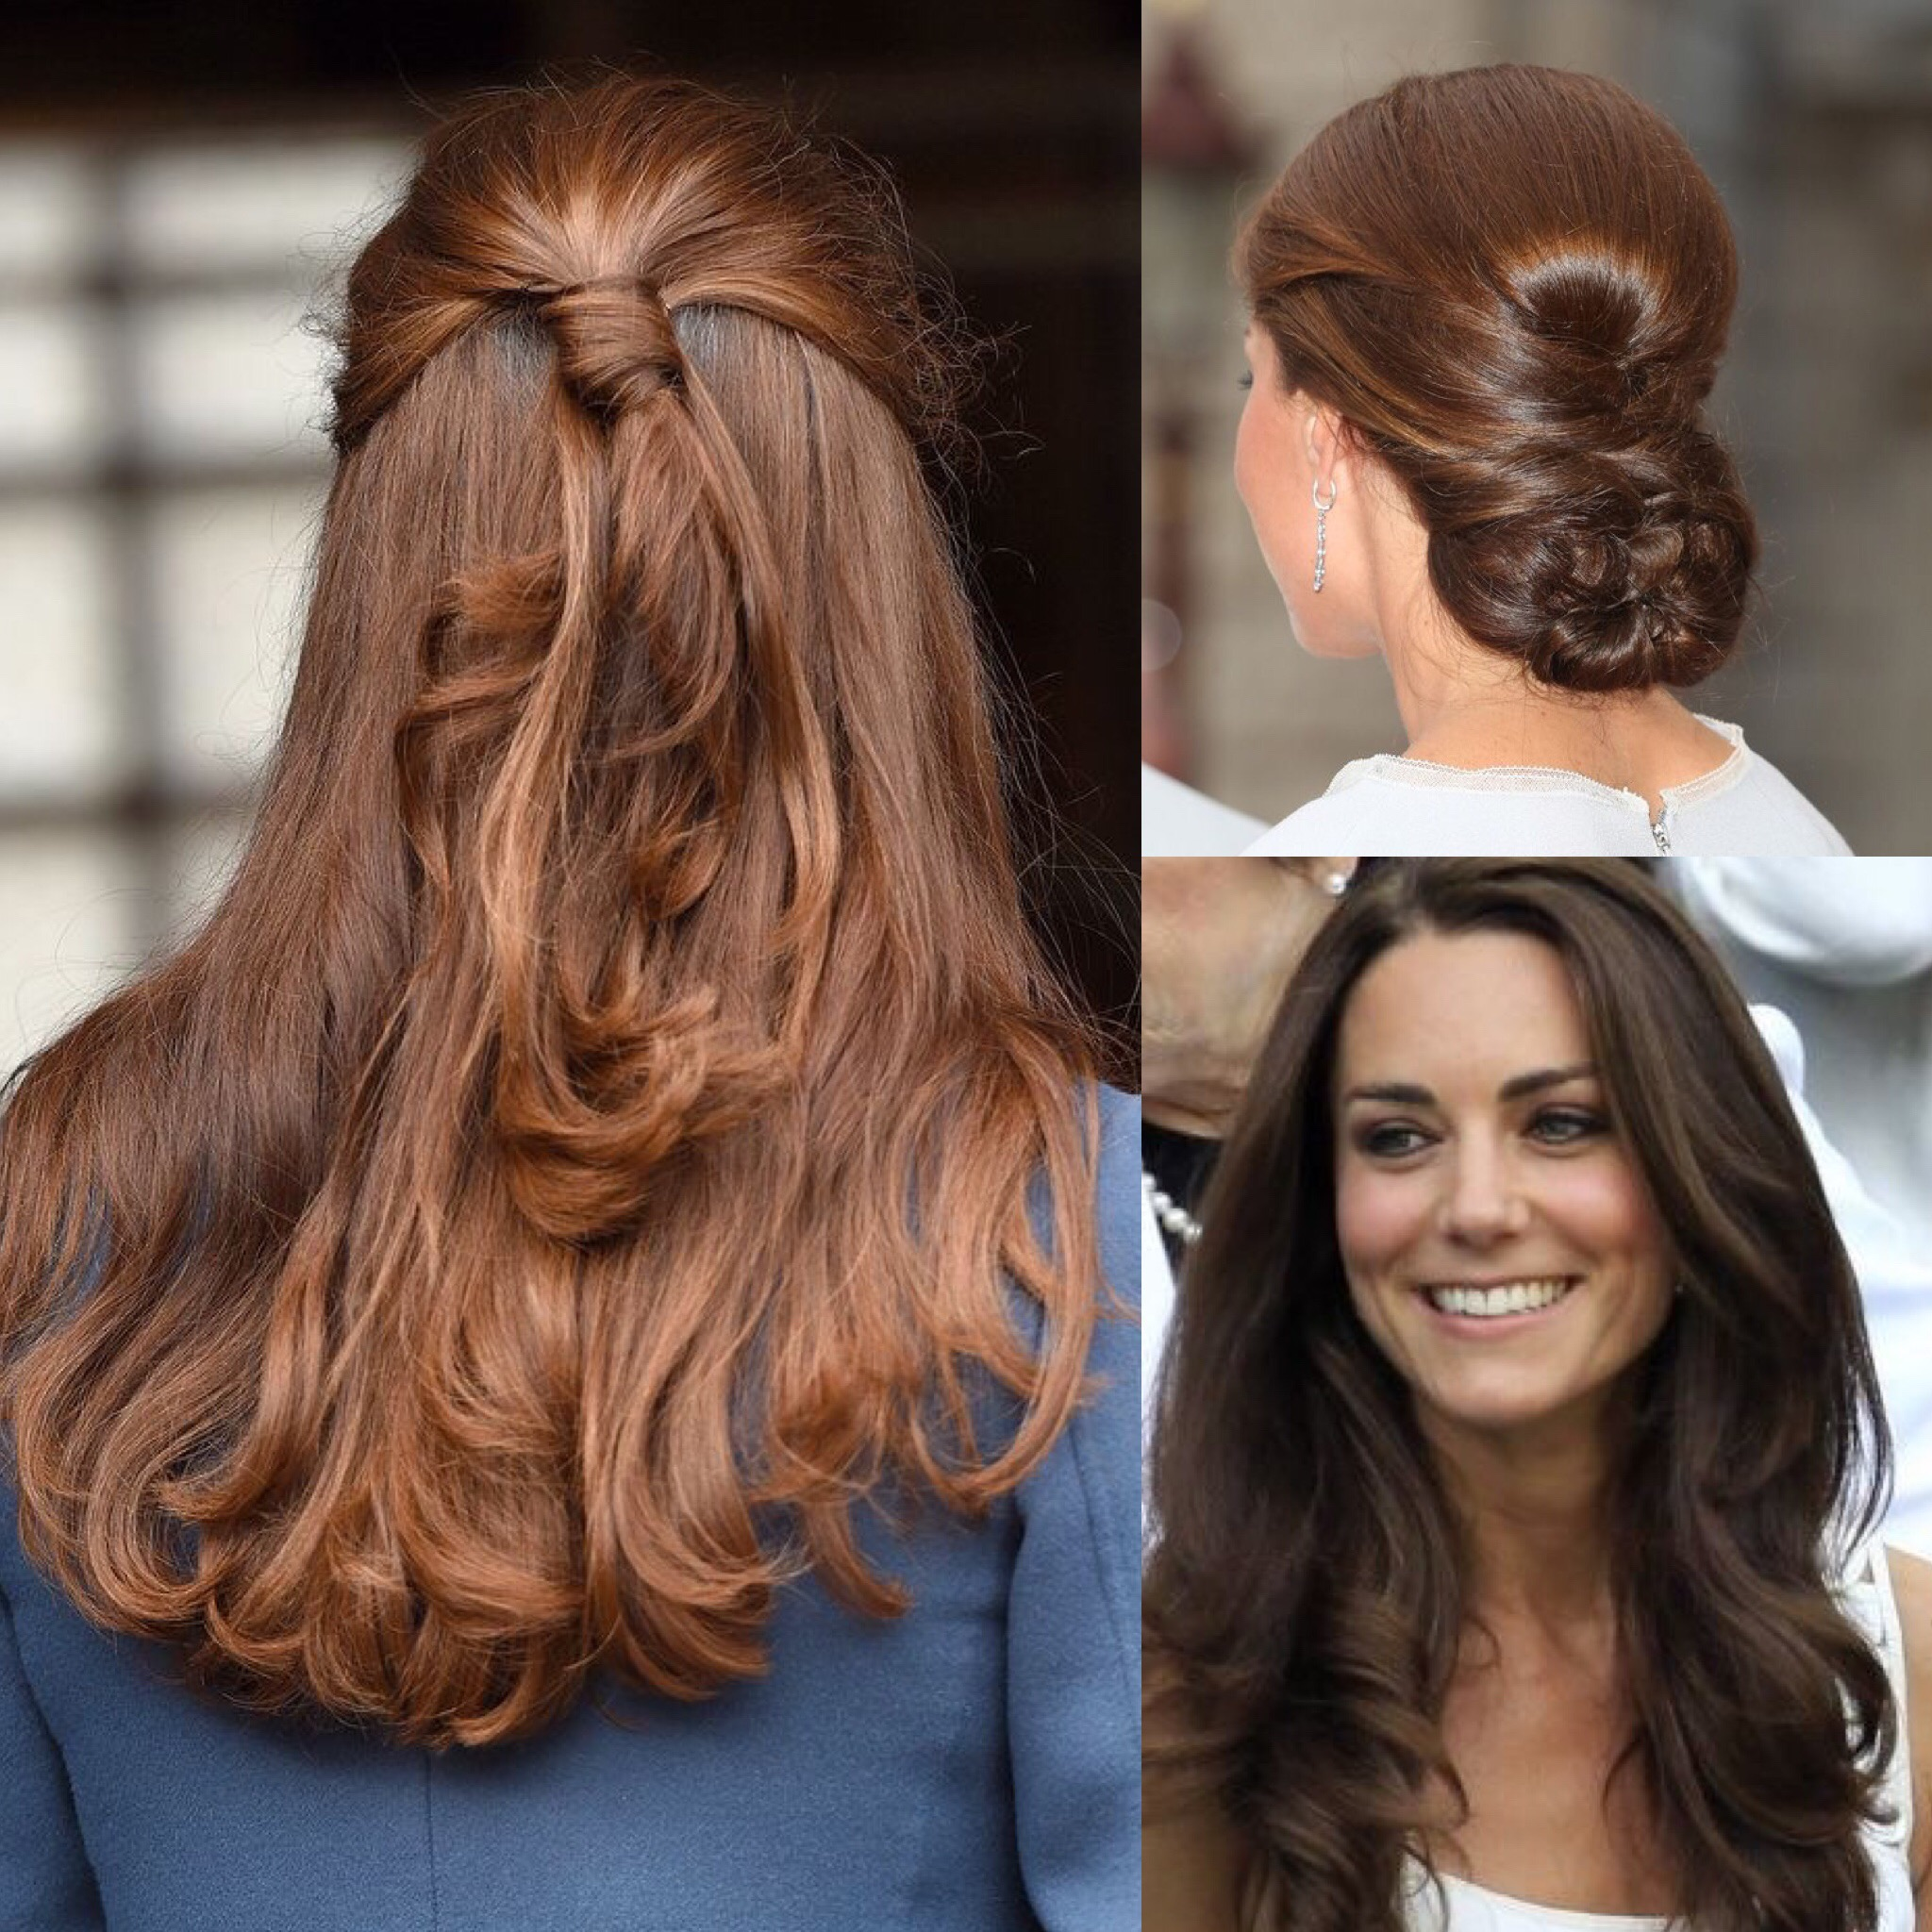 Il Look Di Kate Middleton E La Sua Incredibile Metamorfosi Consulente Di Immagine Rossella